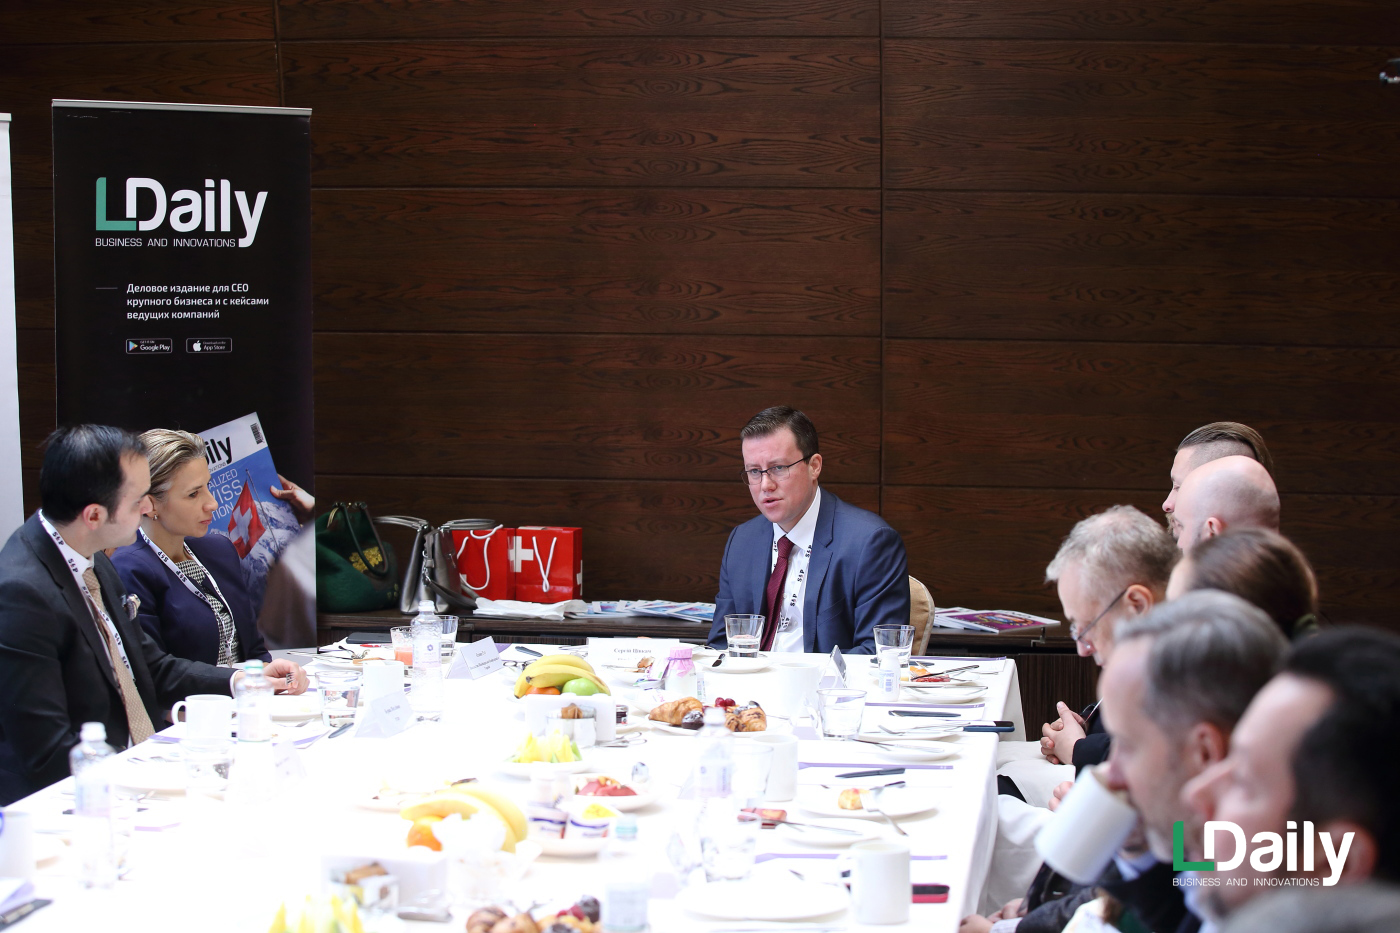 LDaily's second CEO breakfast took place at the Hyatt Regency Kyiv hotel.